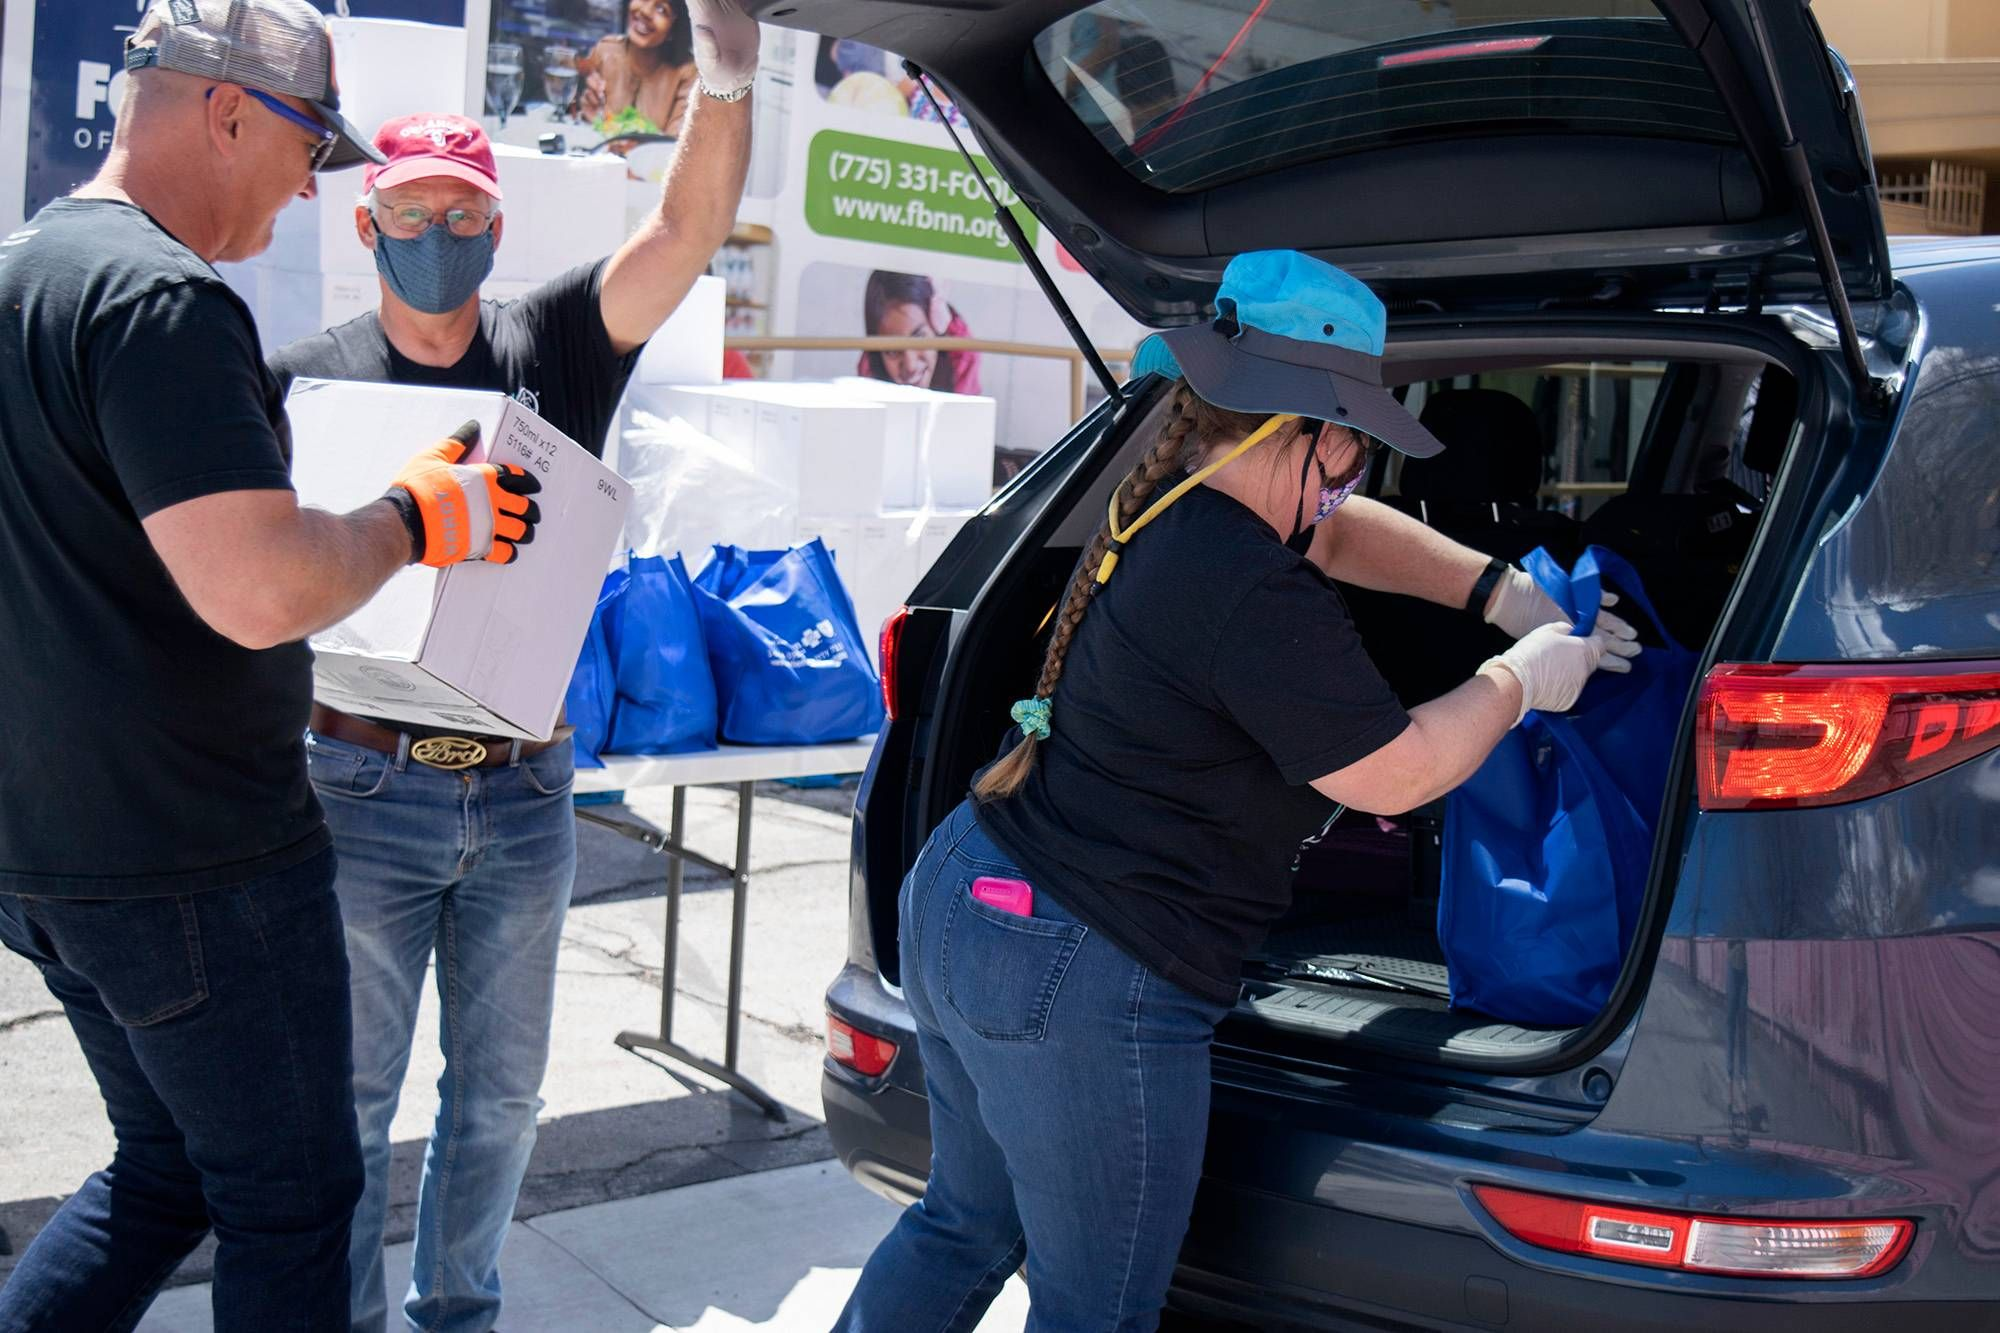 Volunteers load boxes and totes into the back of a car at a food bank distribution center. Rewire PBS Our Future